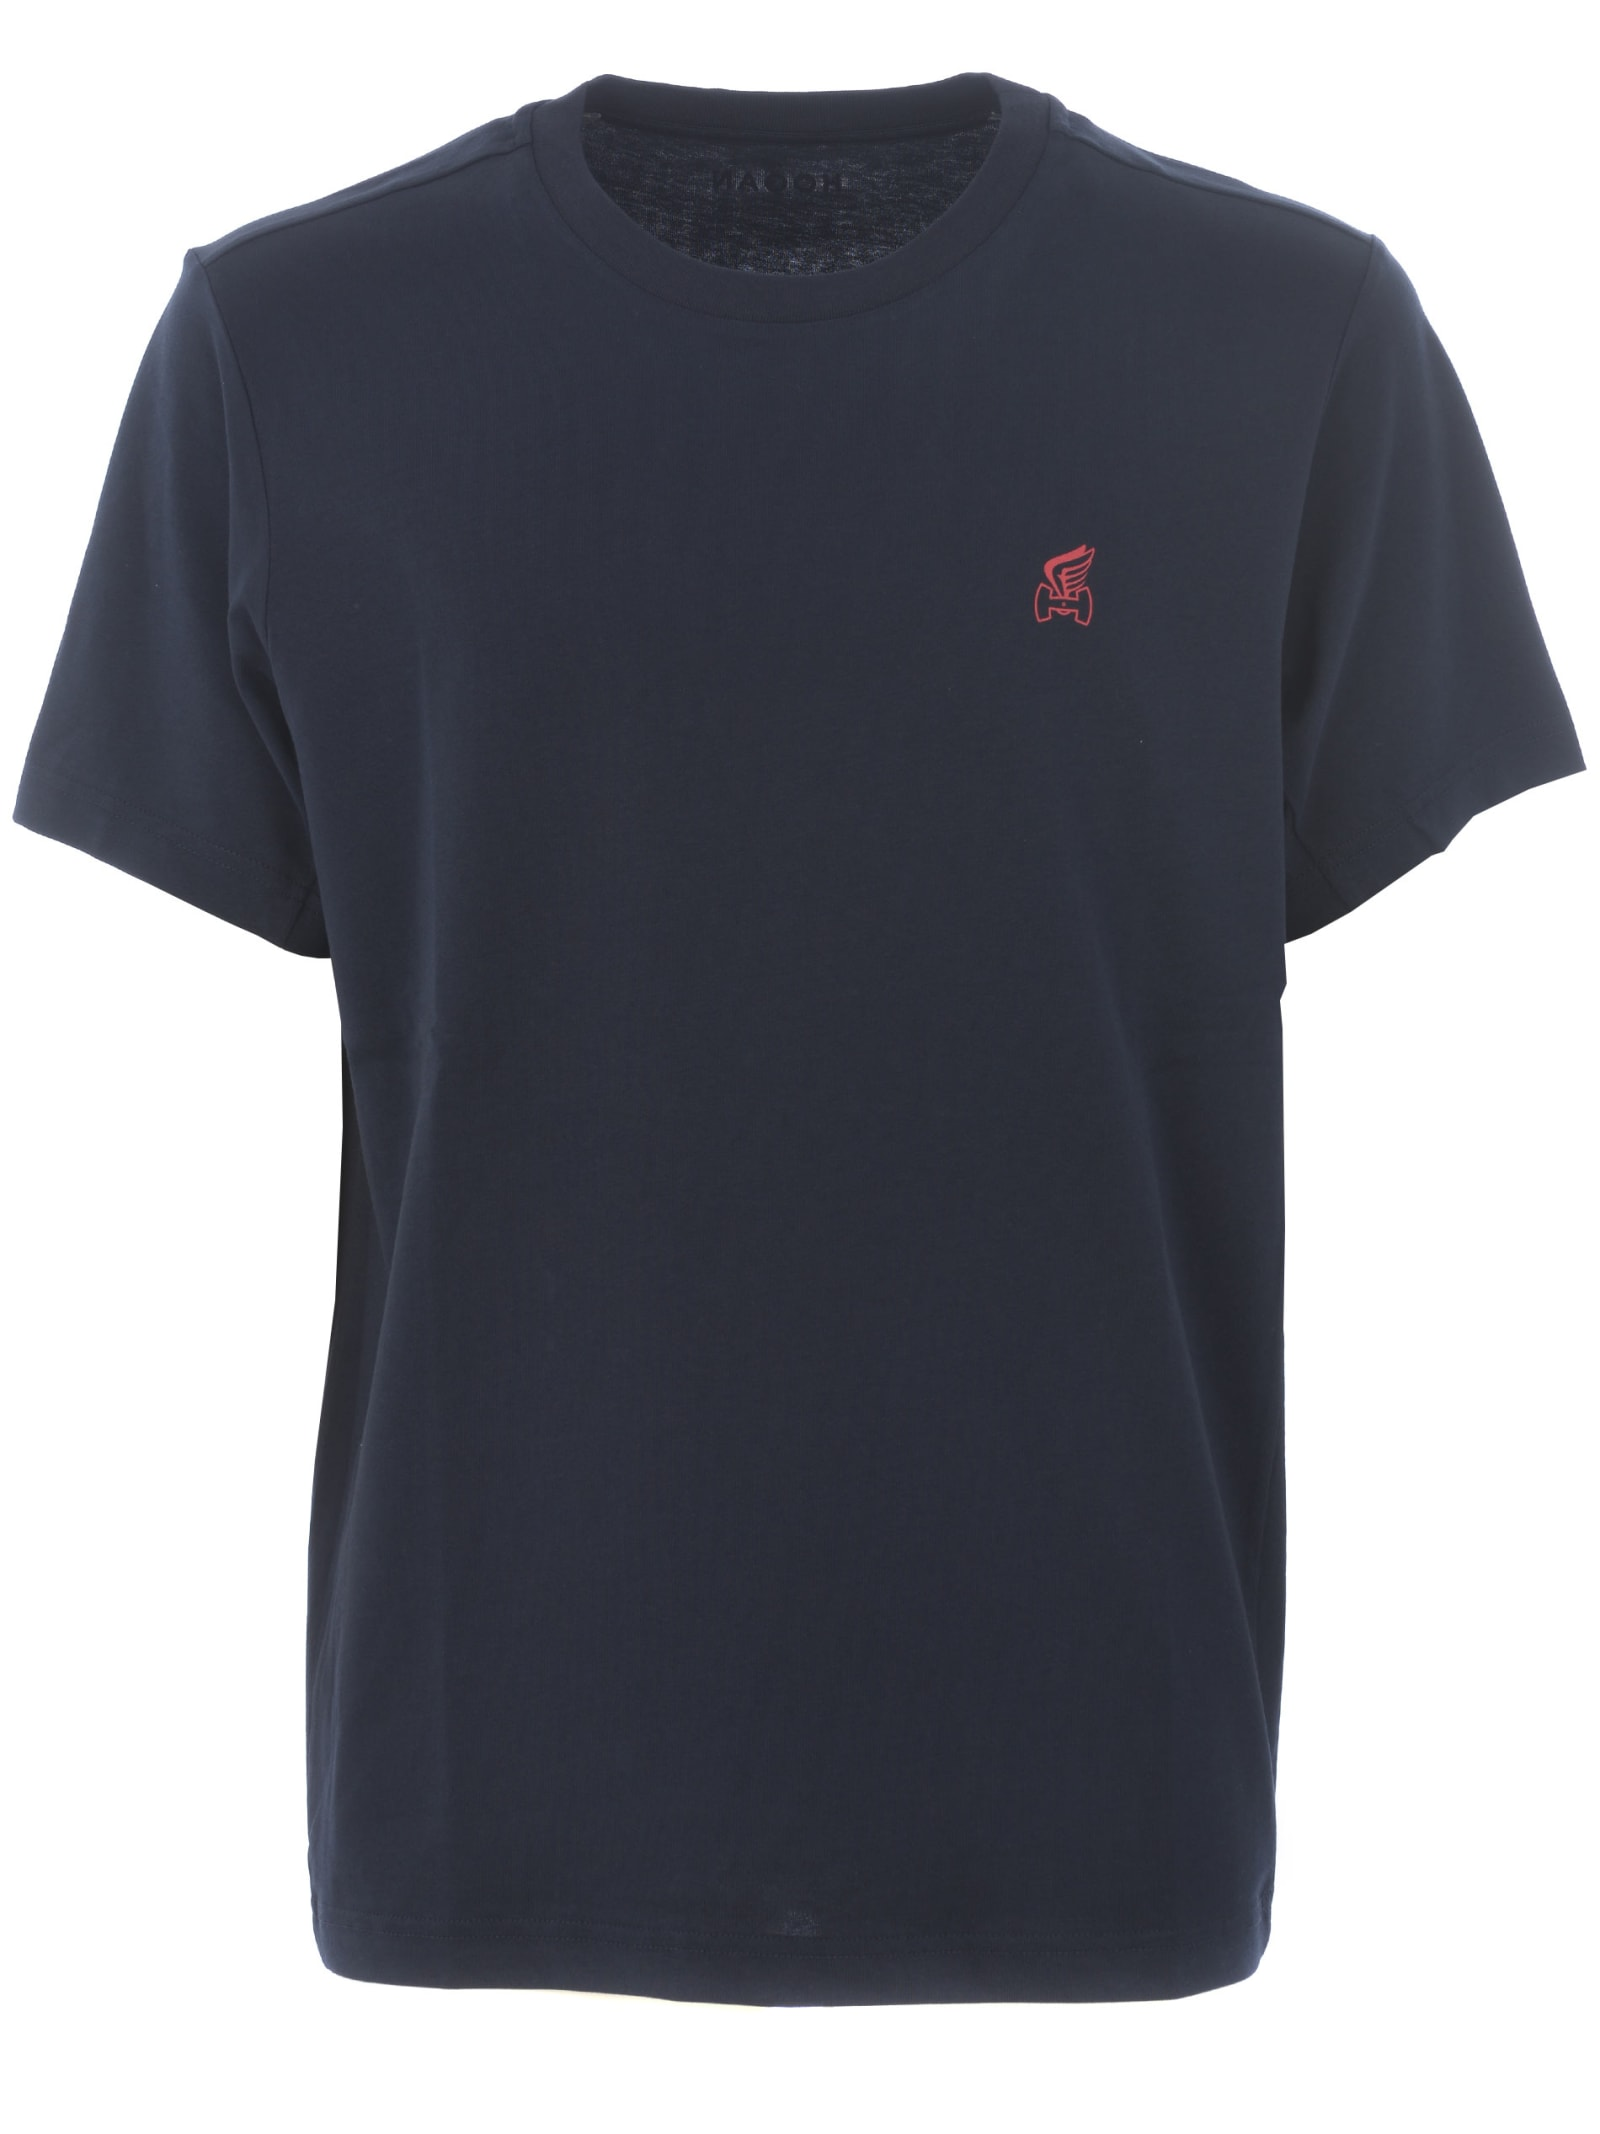 Hogan Short Sleeve T-shirt In Blu Scuro